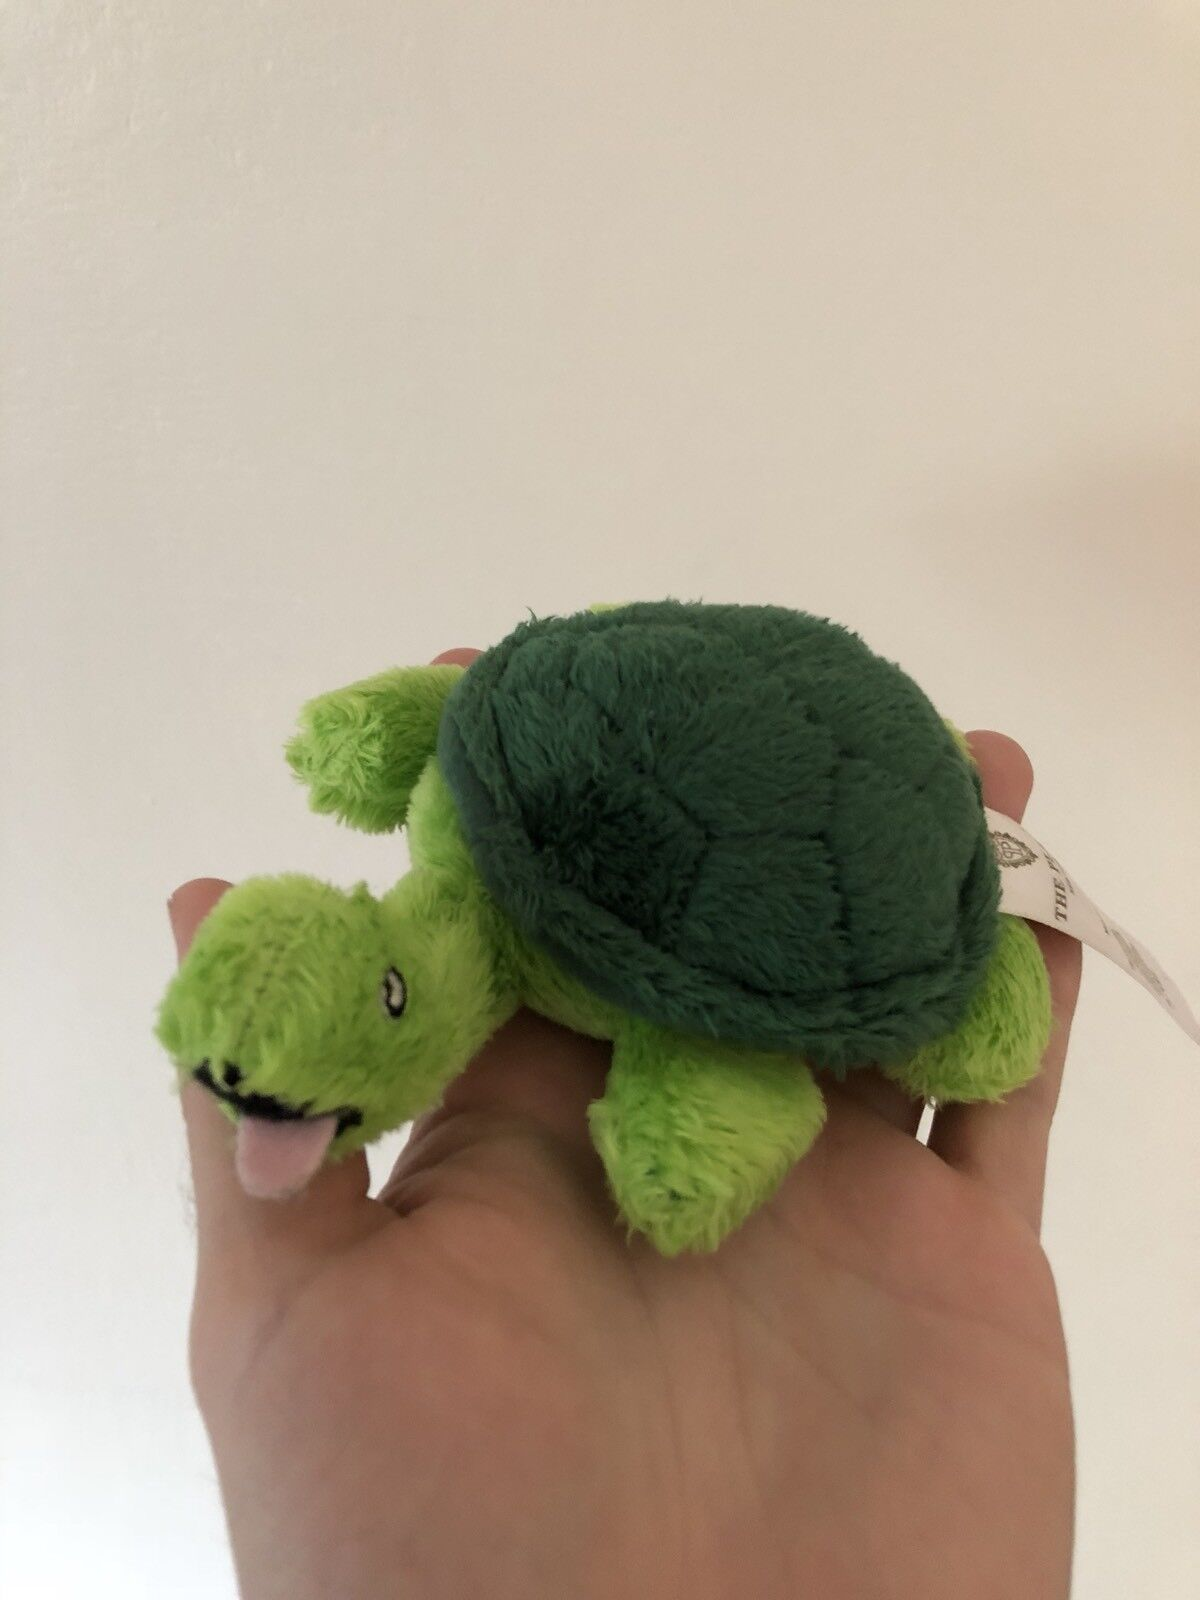 The Plaza Hotel Plush Turtle Stuffed Animal Doll Toy Kids Manhatten New York